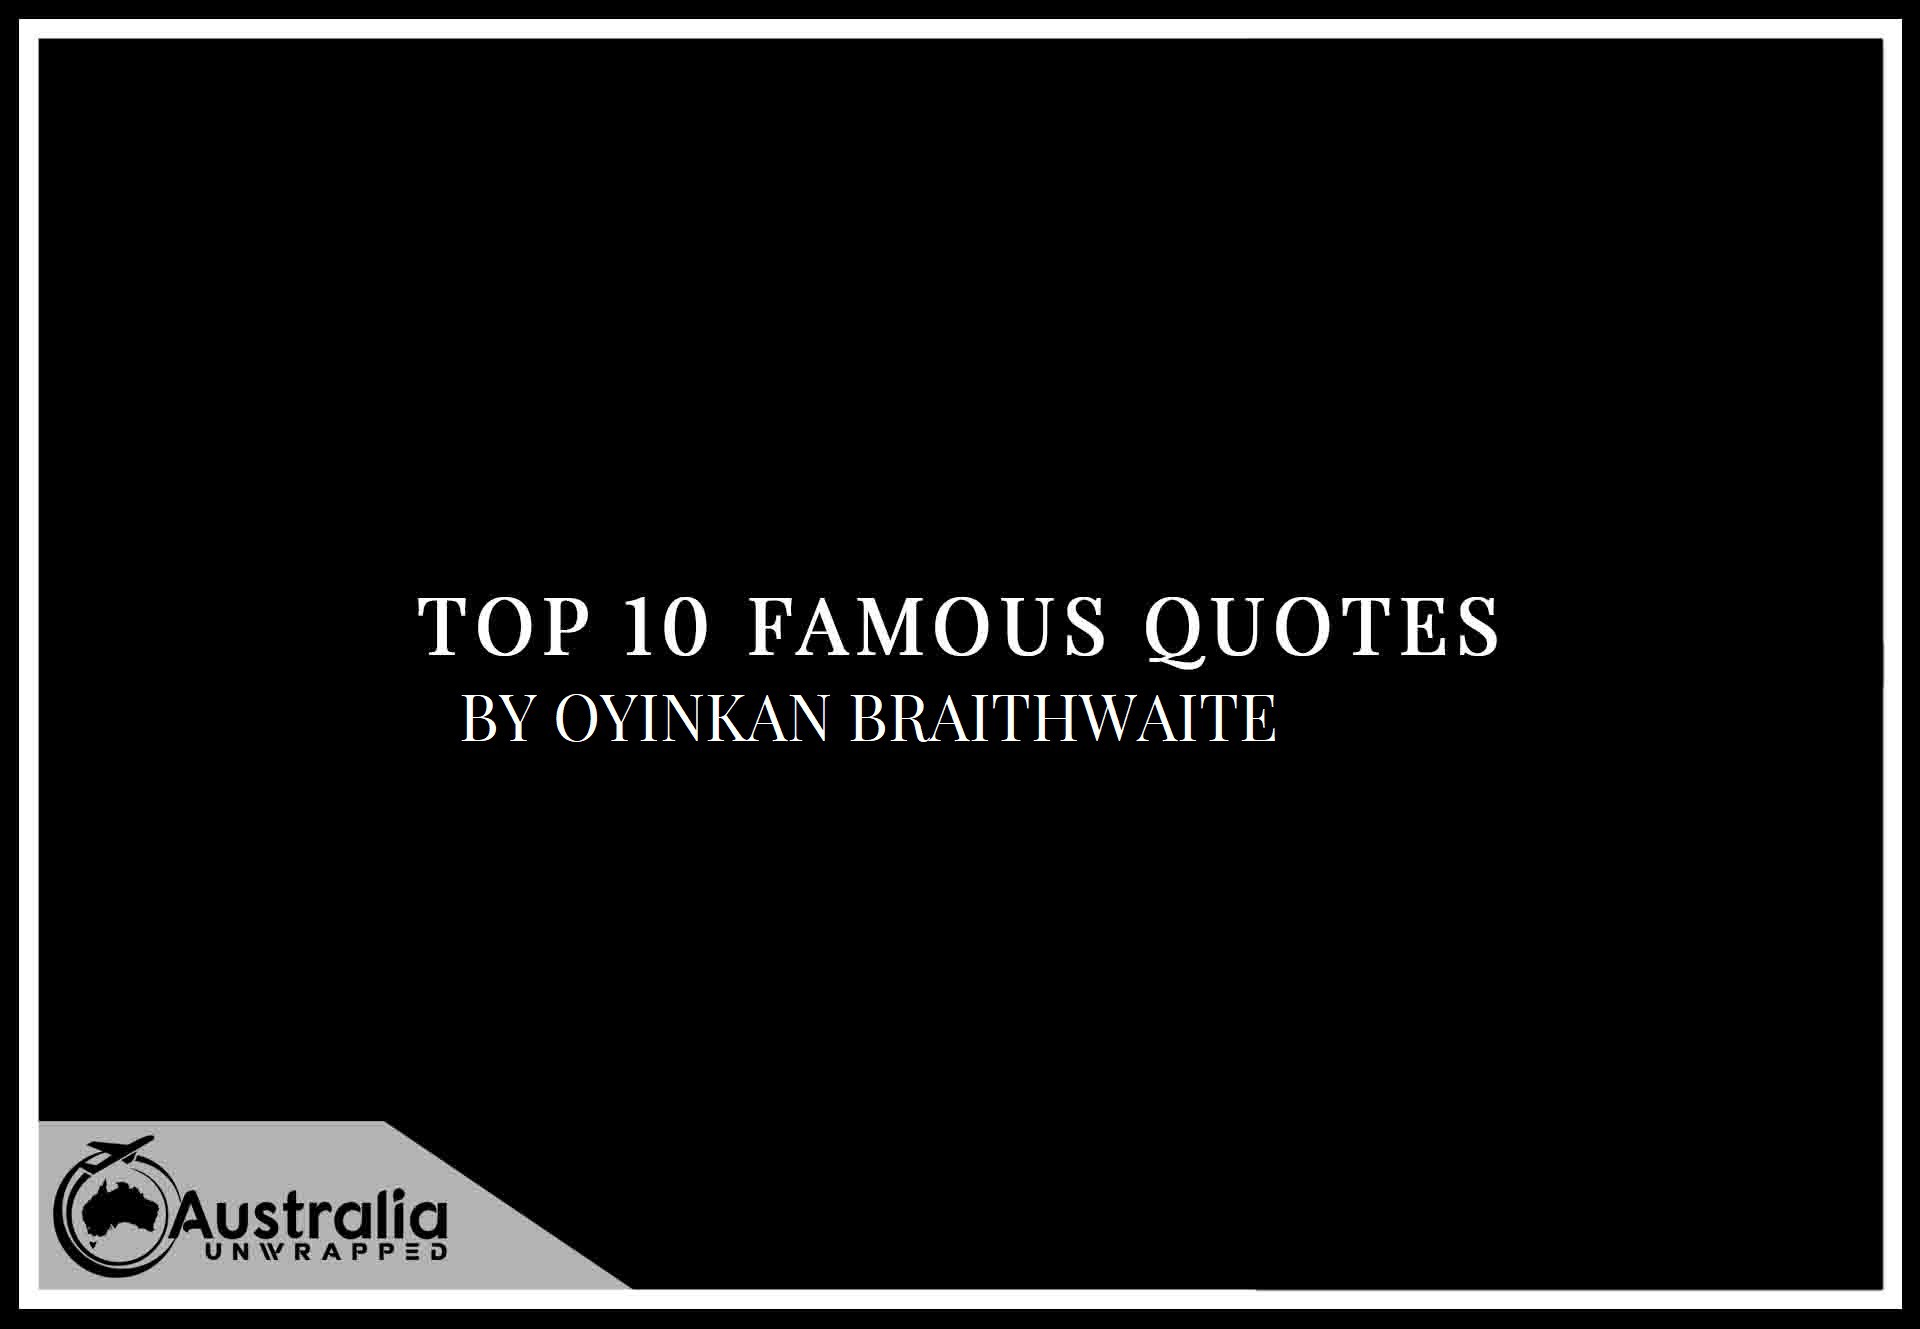 Top 10 Famous Quotes by Author Oyinkan Braithwaite